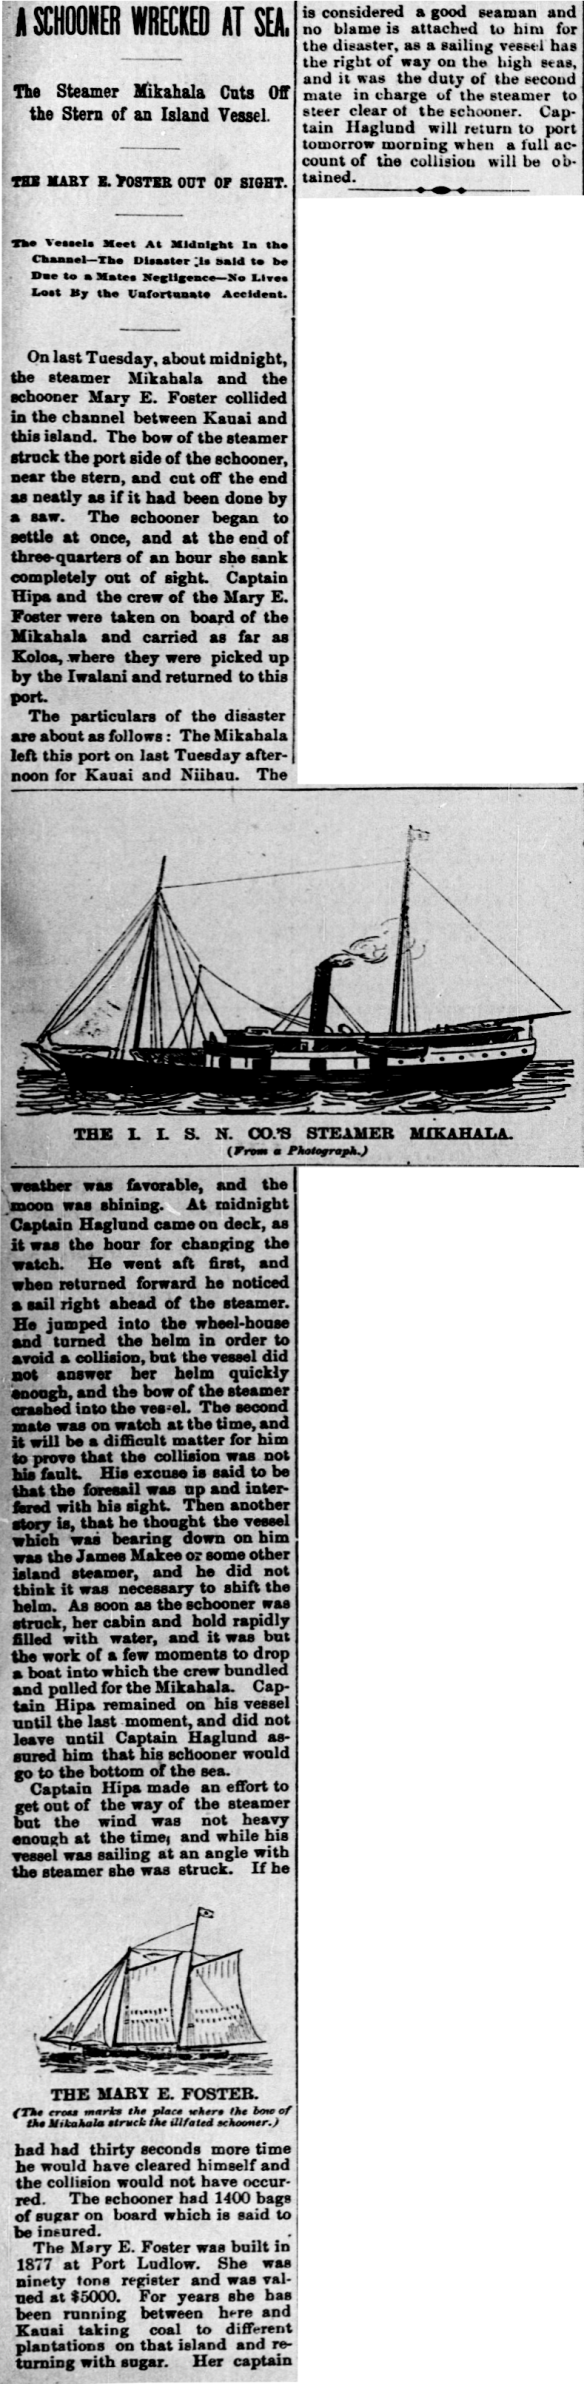 A SCHOONER WRECKED AT SEA.